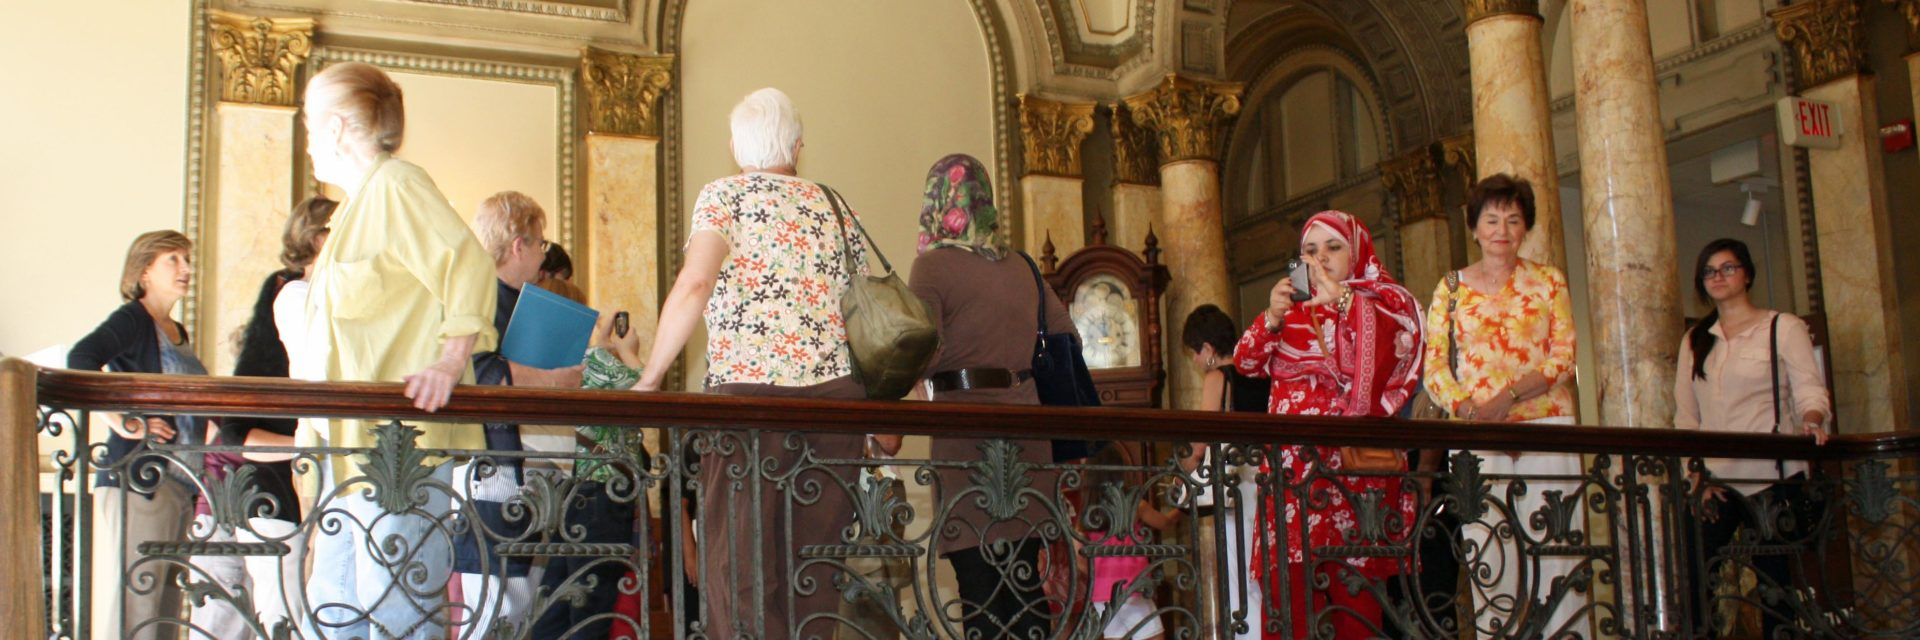 Visitors gather on our Grand Staircase balcony